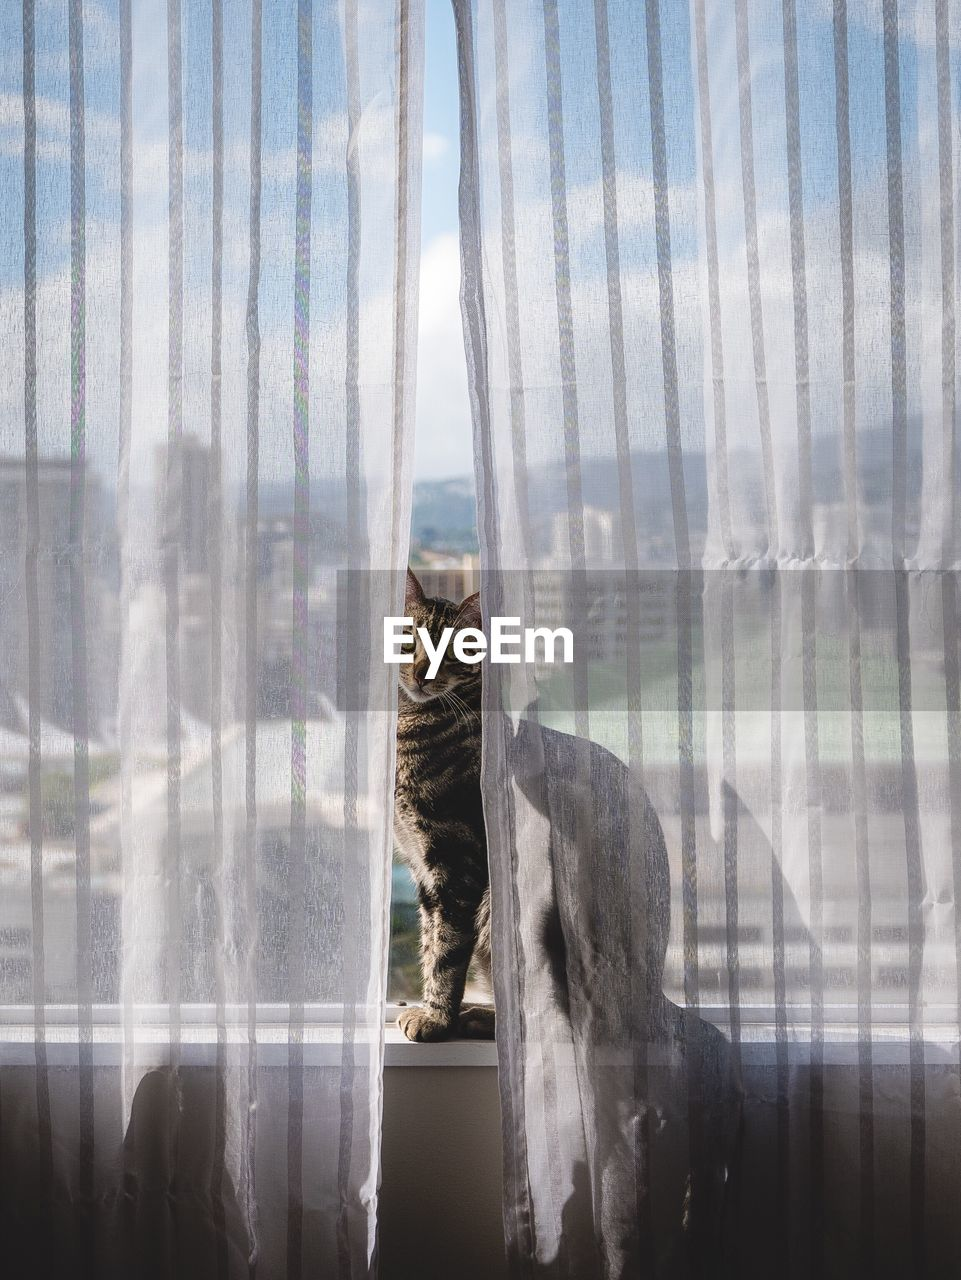 Portrait of cat sitting on window sill seen through curtains